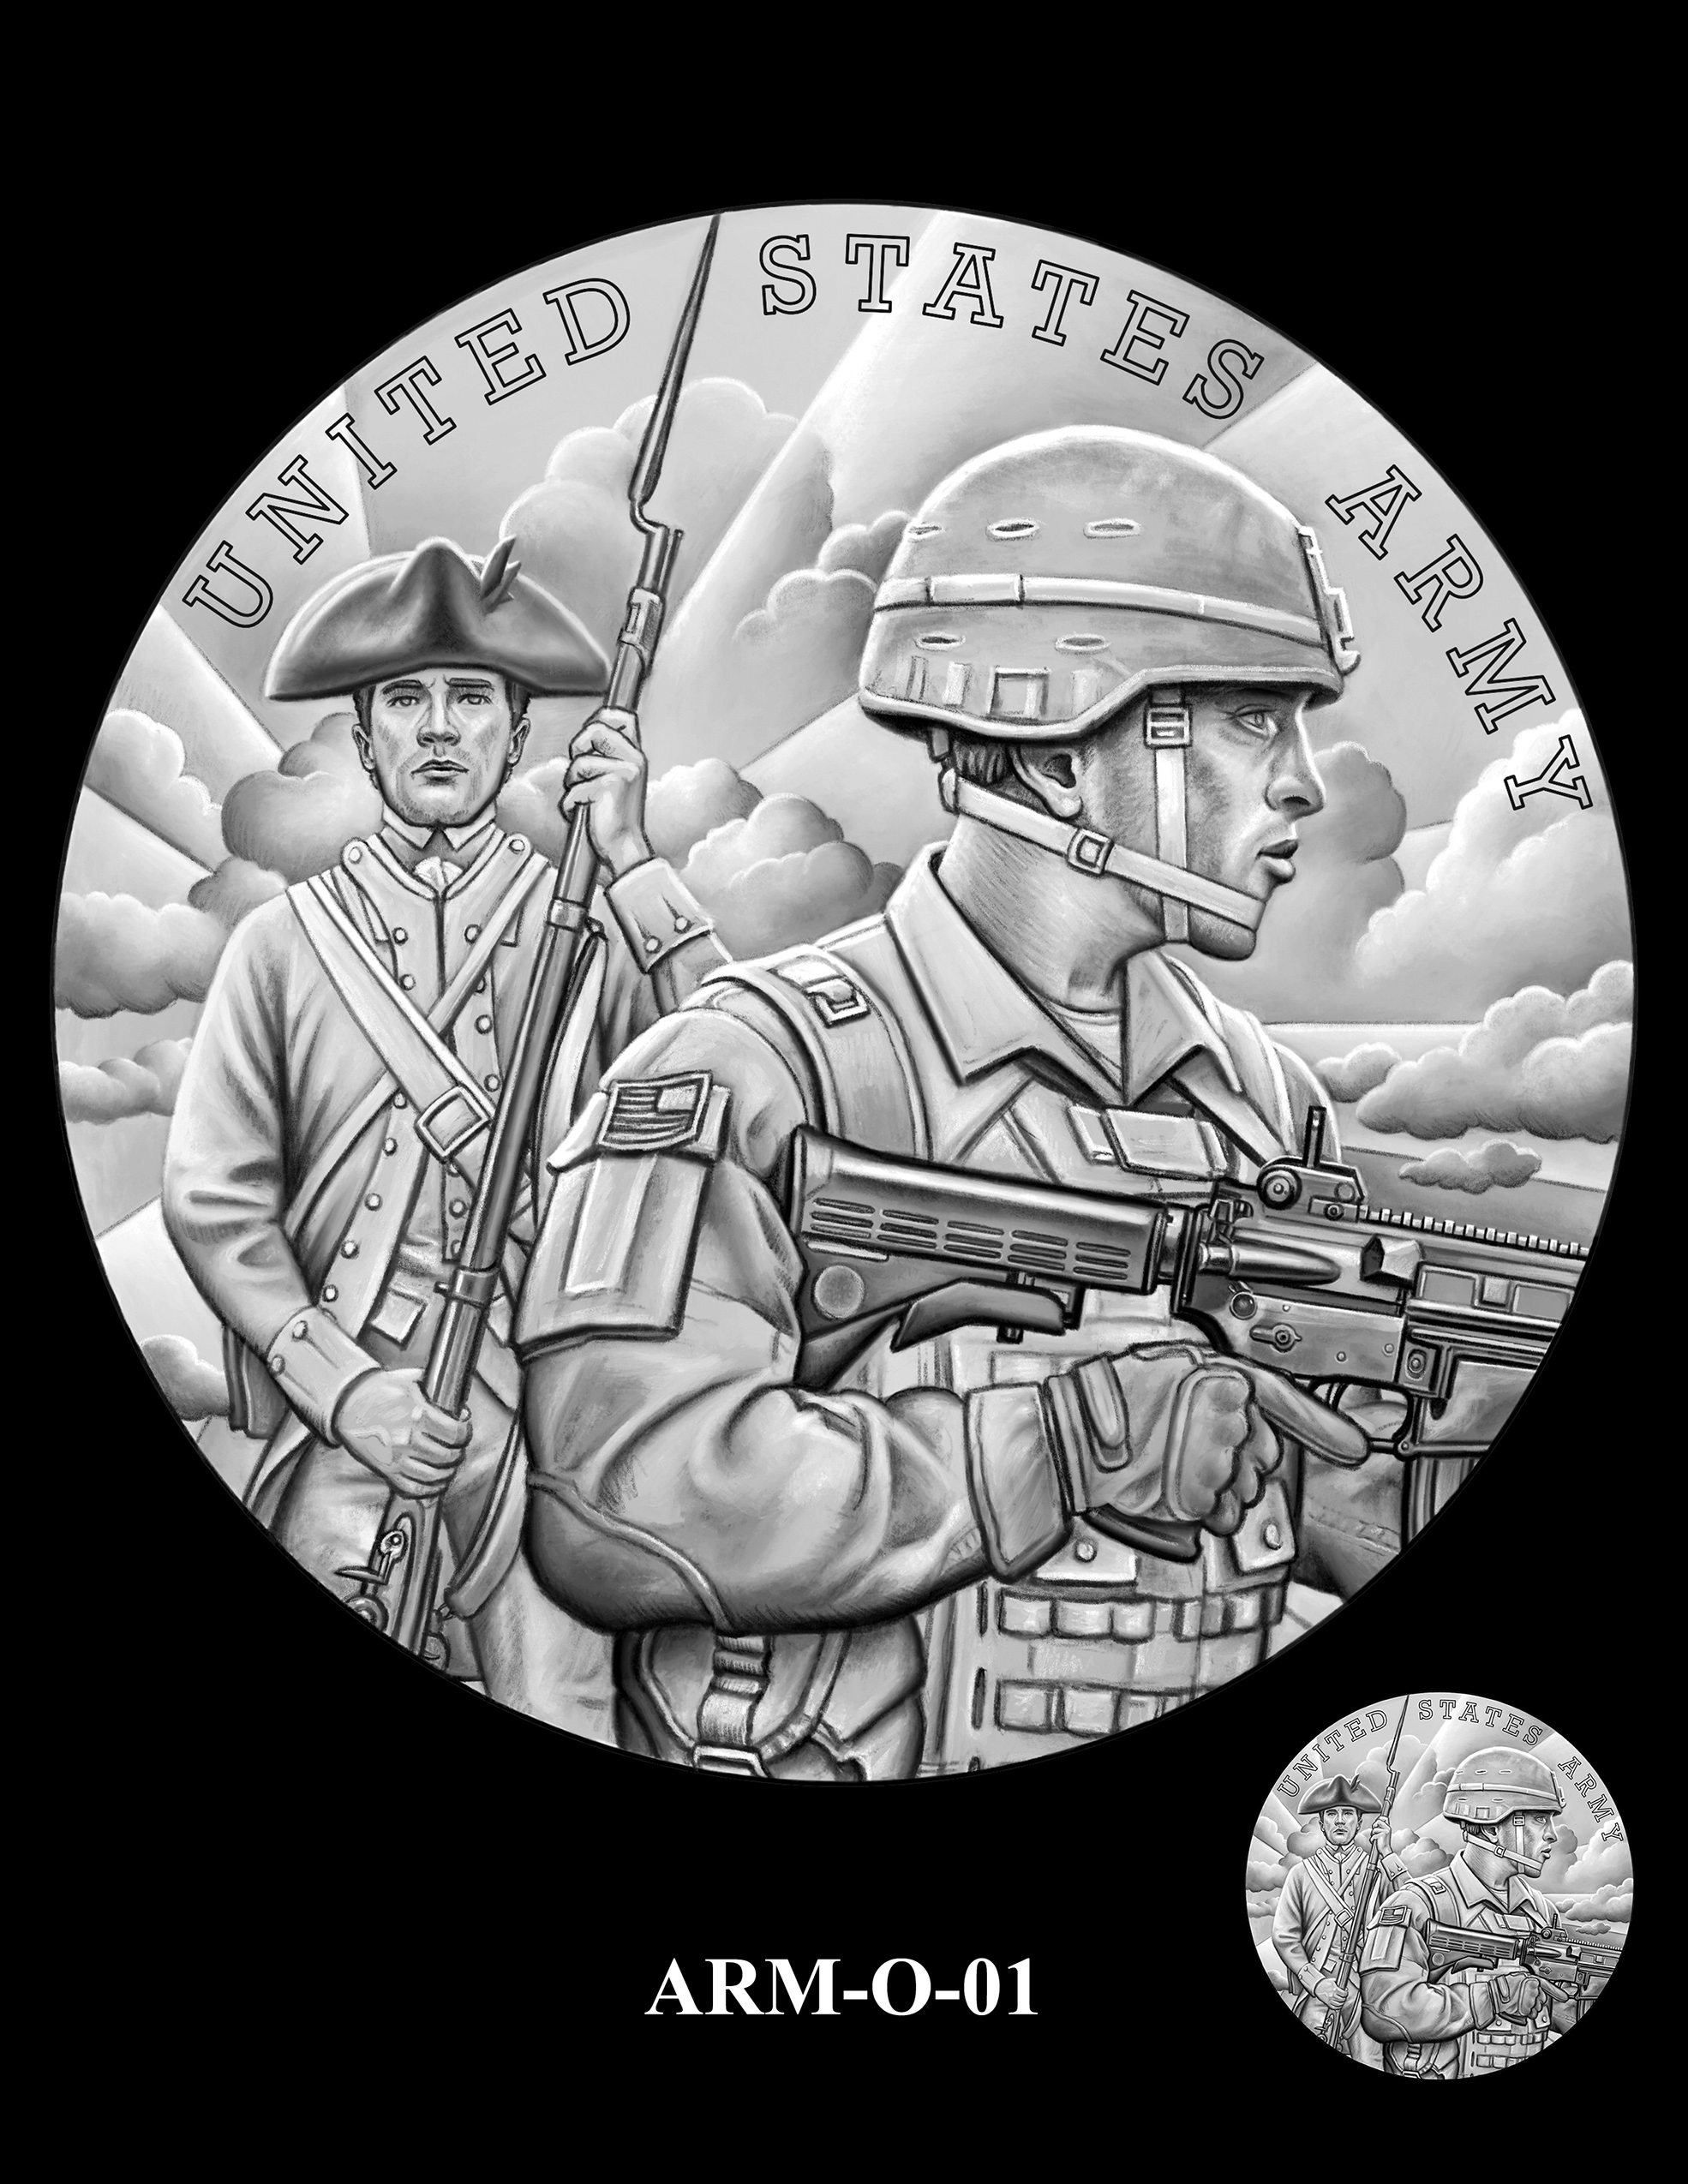 ARM-O-01 -- United States Army Silver Medal